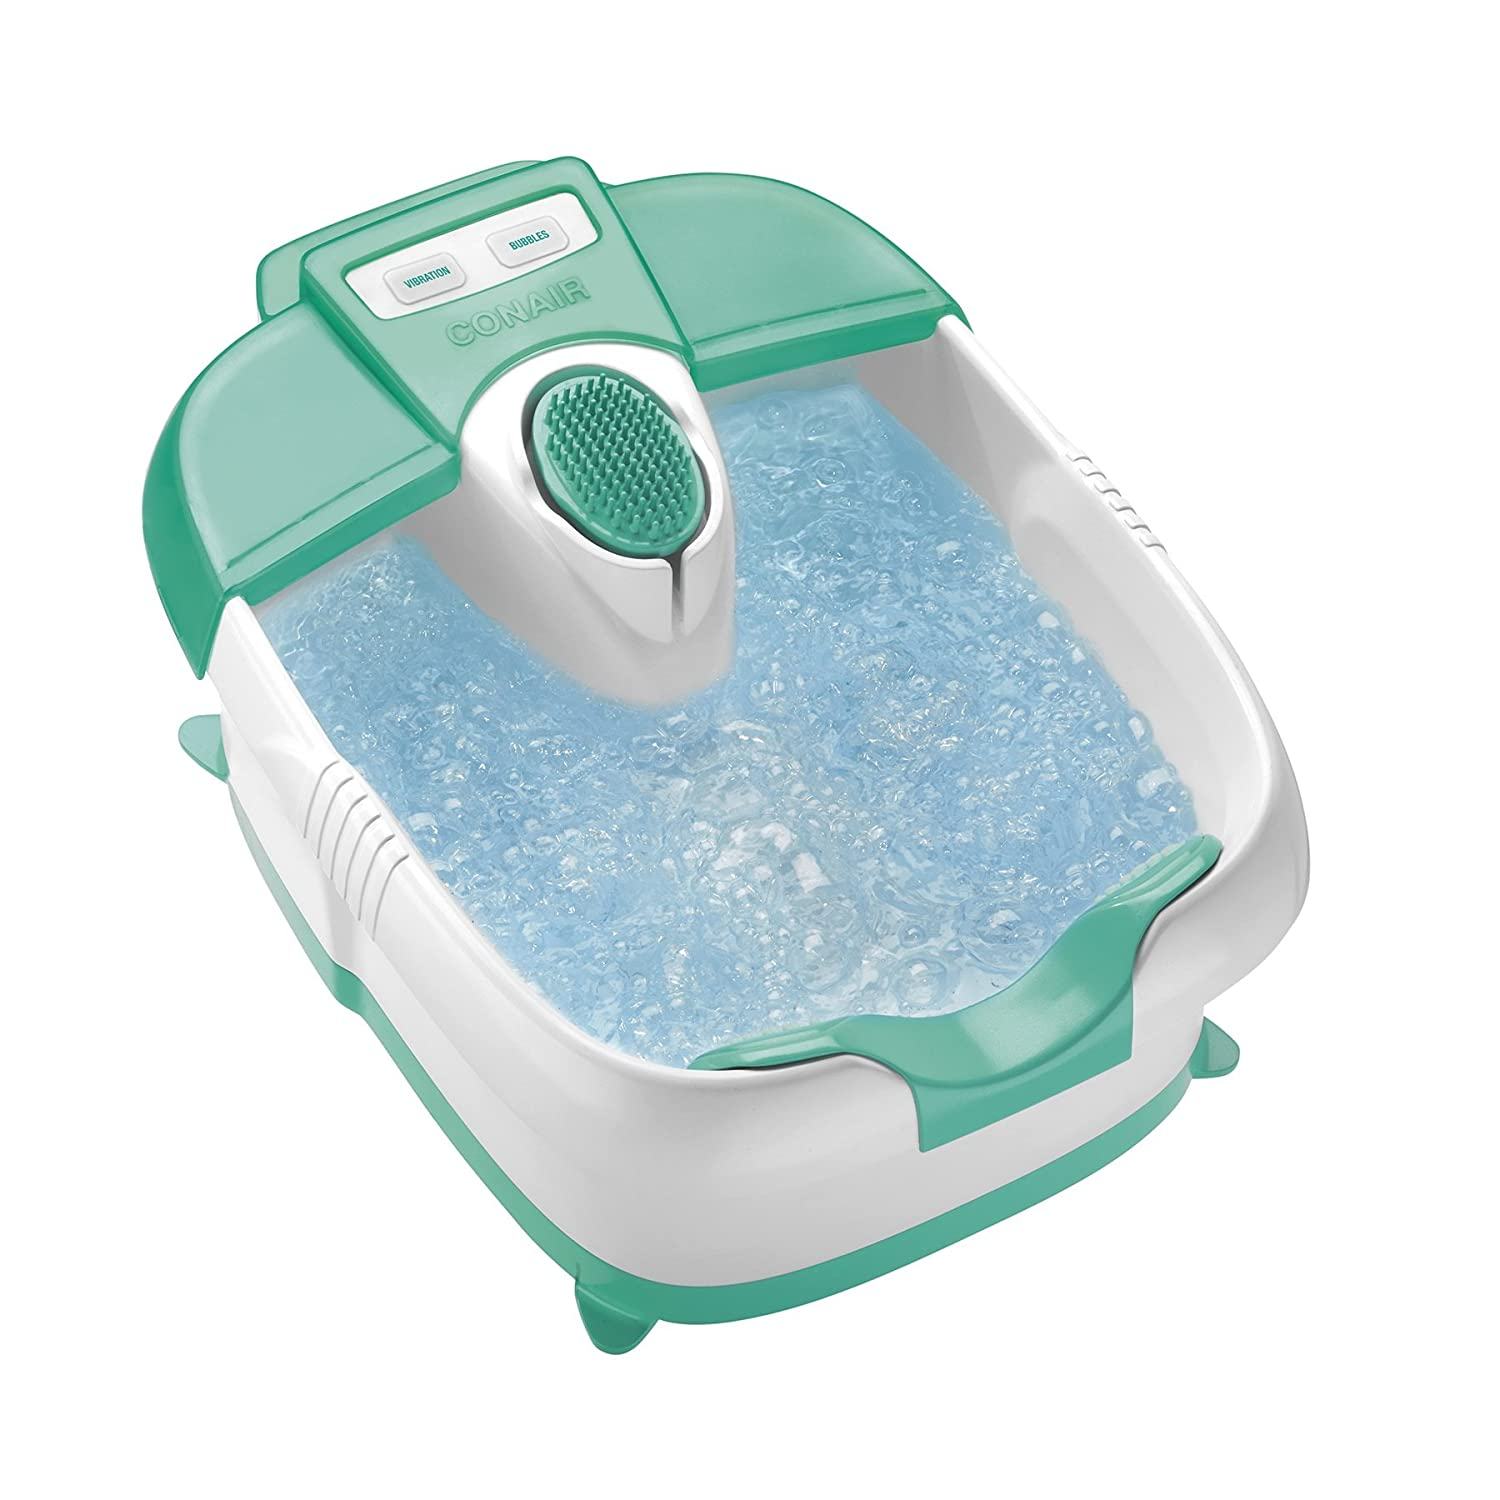 Amazon.com: Conair Foot/Pedicure Spa with Massage Bubbles: CONAIR ...